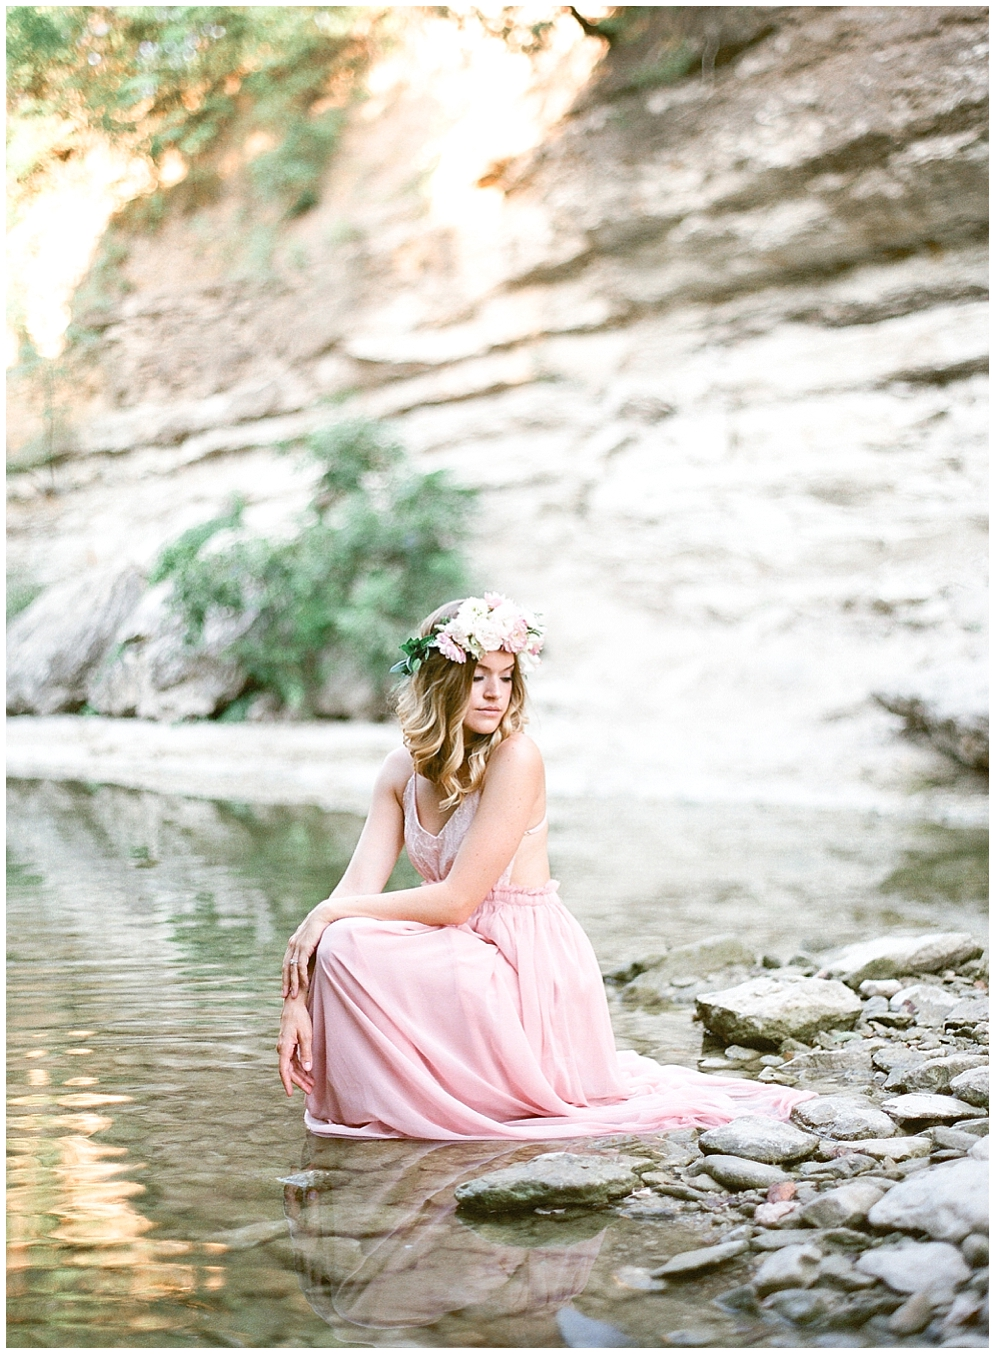 Water Goddess | Fine Art Film | Emilie Anne Photography-29.jpg